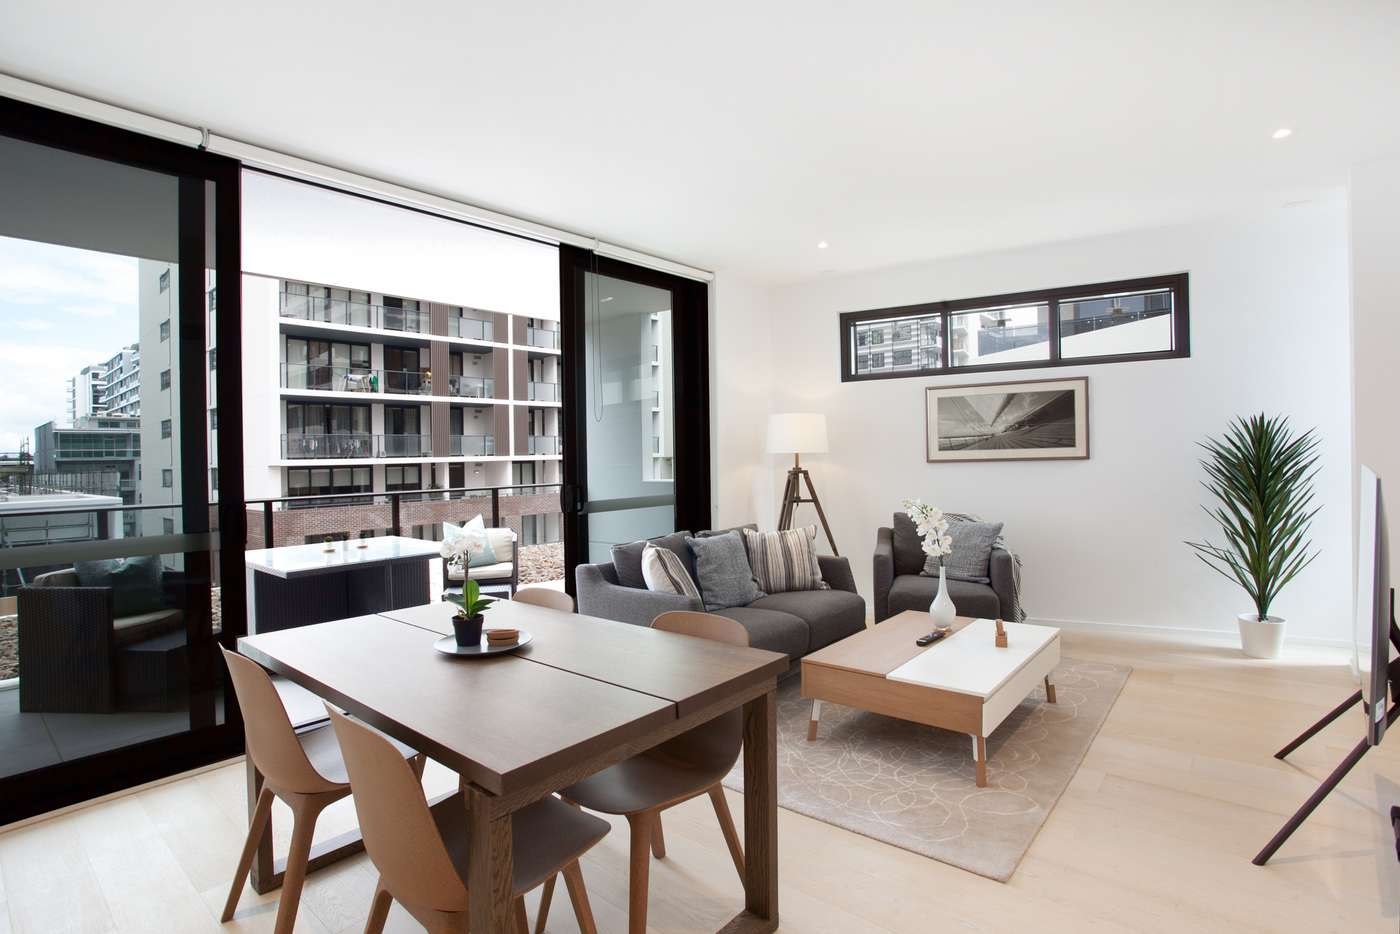 Main view of Homely apartment listing, 6 Galloway Street, Mascot NSW 2020